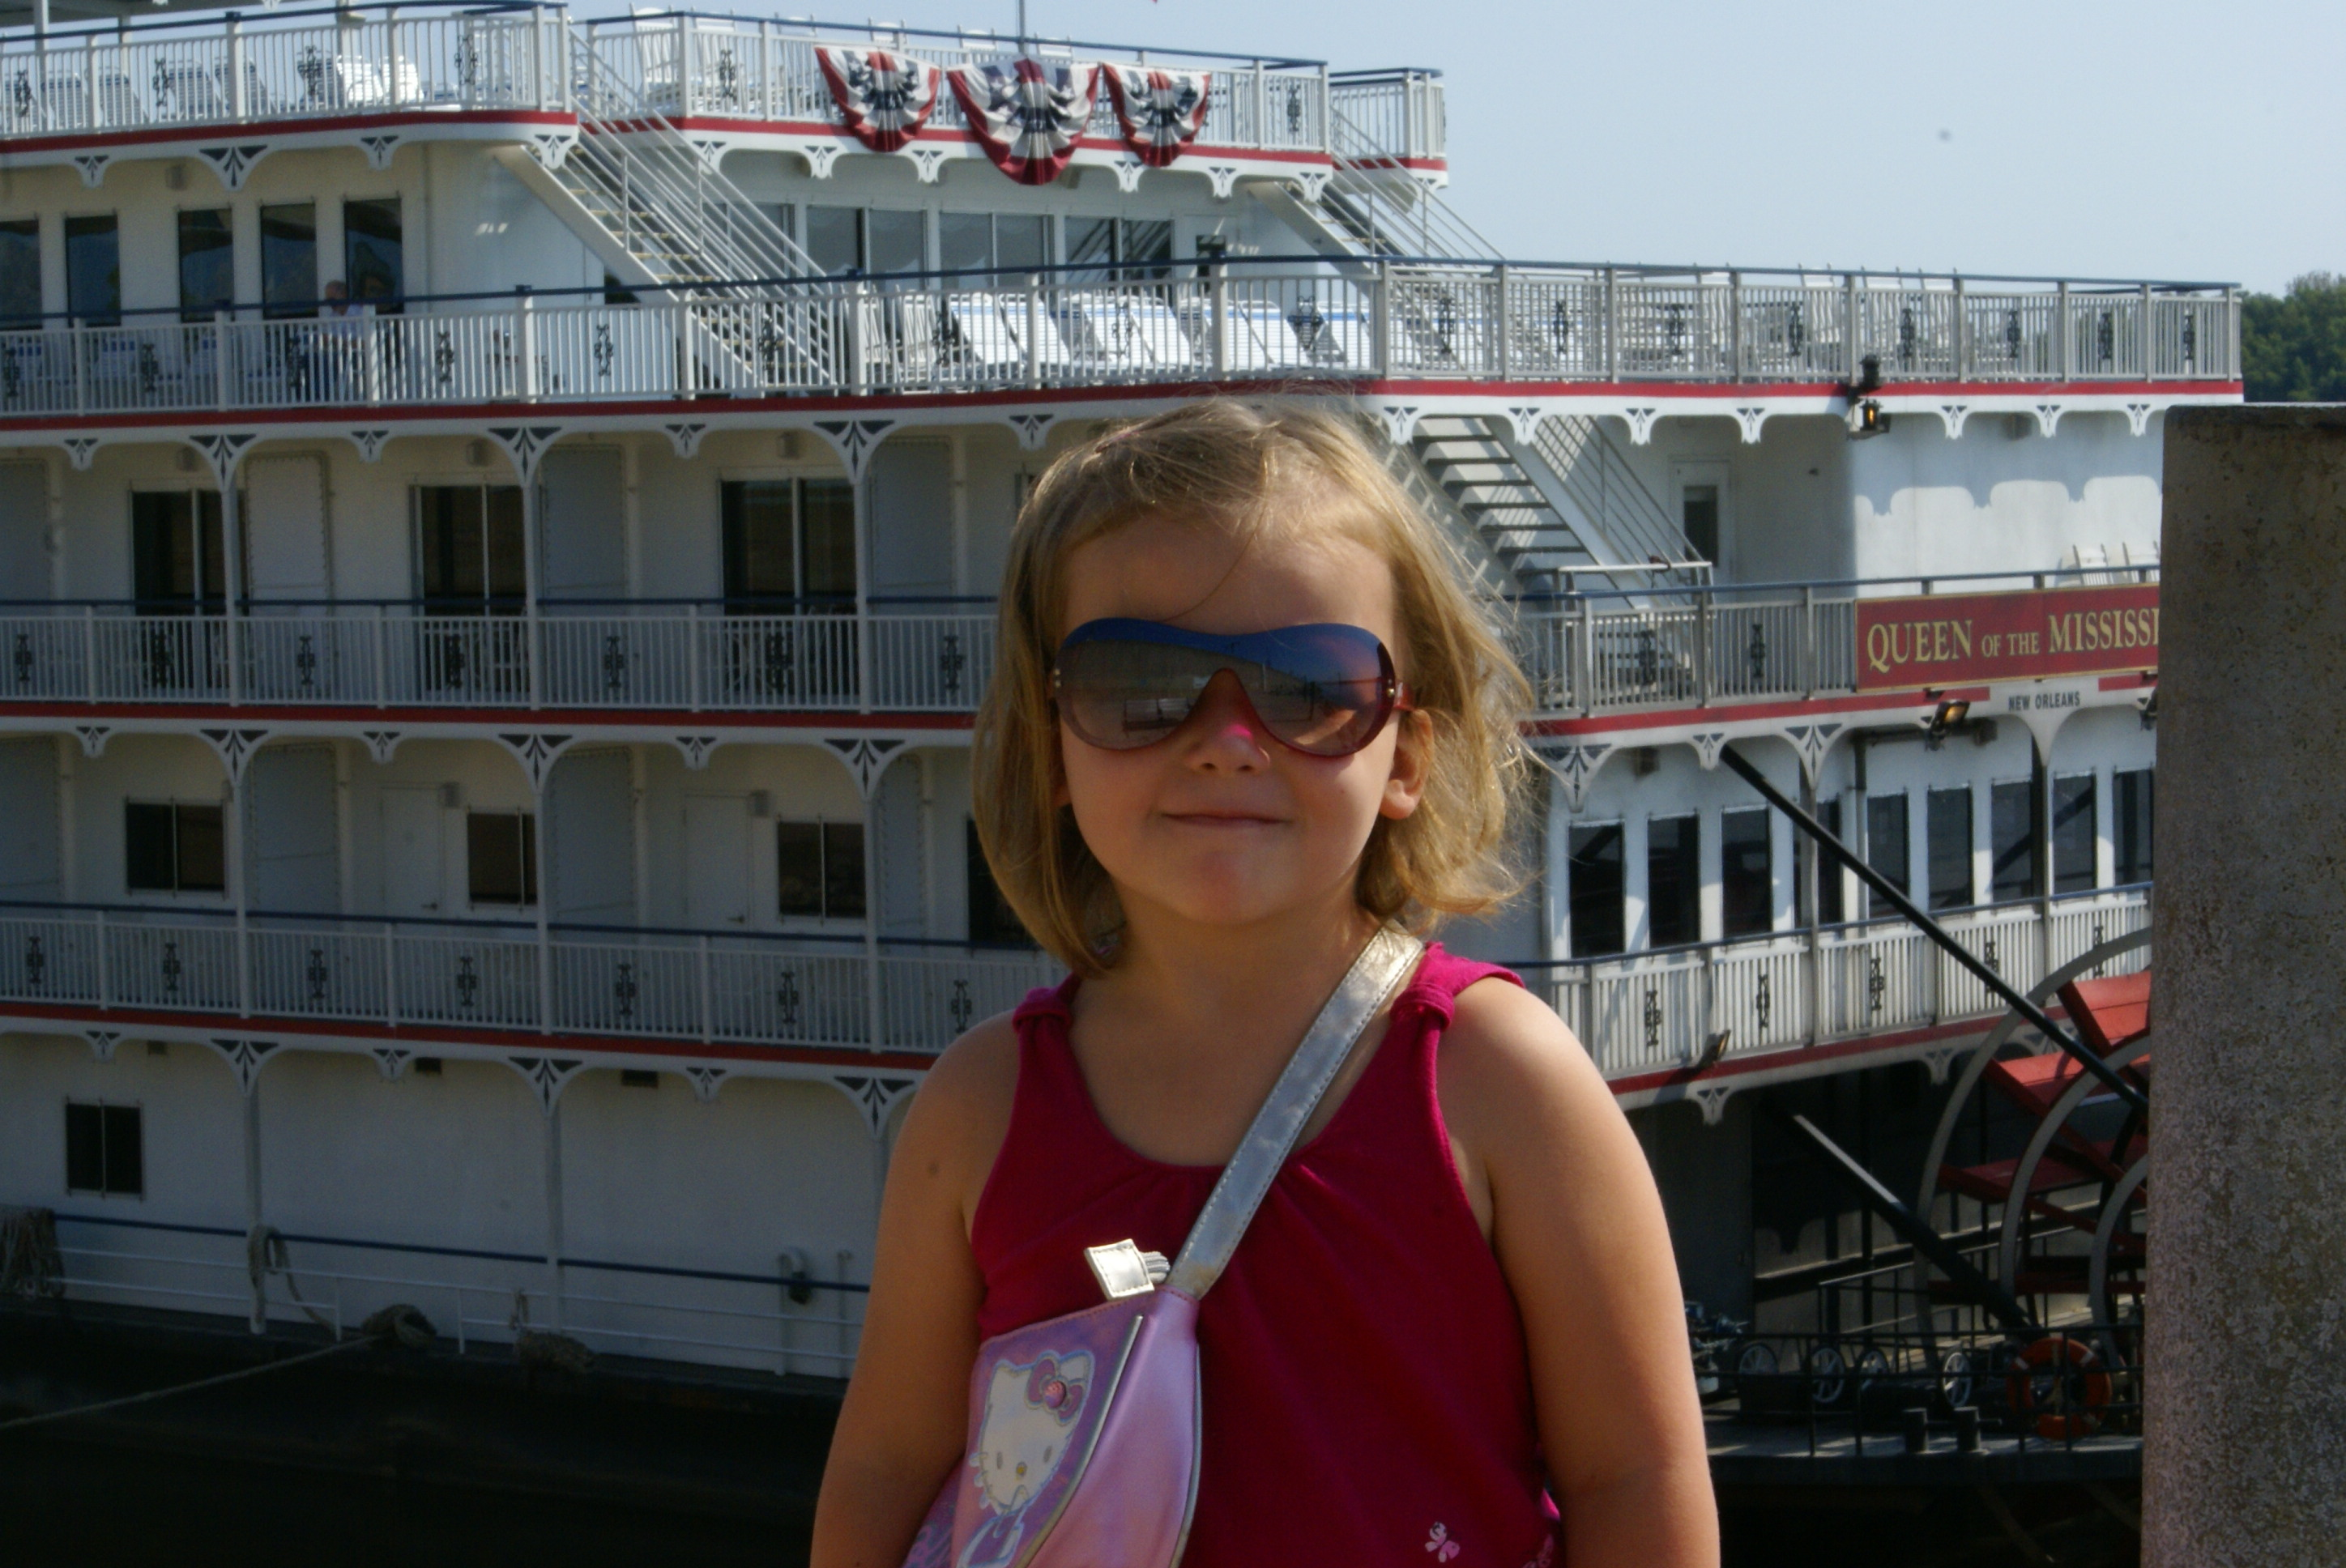 Lucia and Queen of the Mississippi, which was docked in Cape Girardeau during our stay